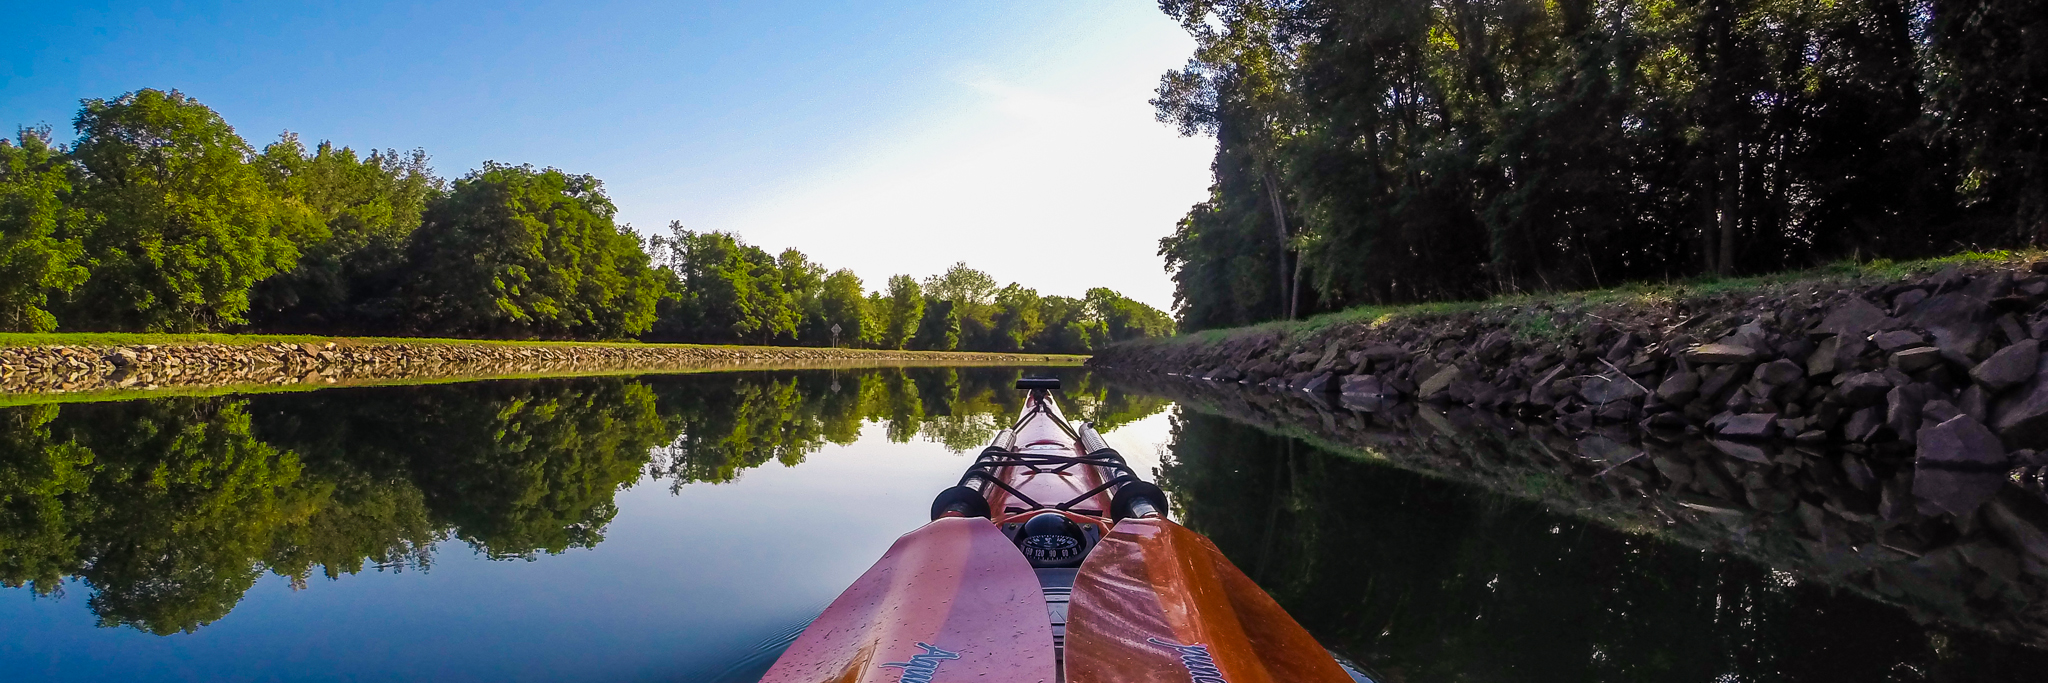 chip_macalpine_erie_canal_kayaking_115889